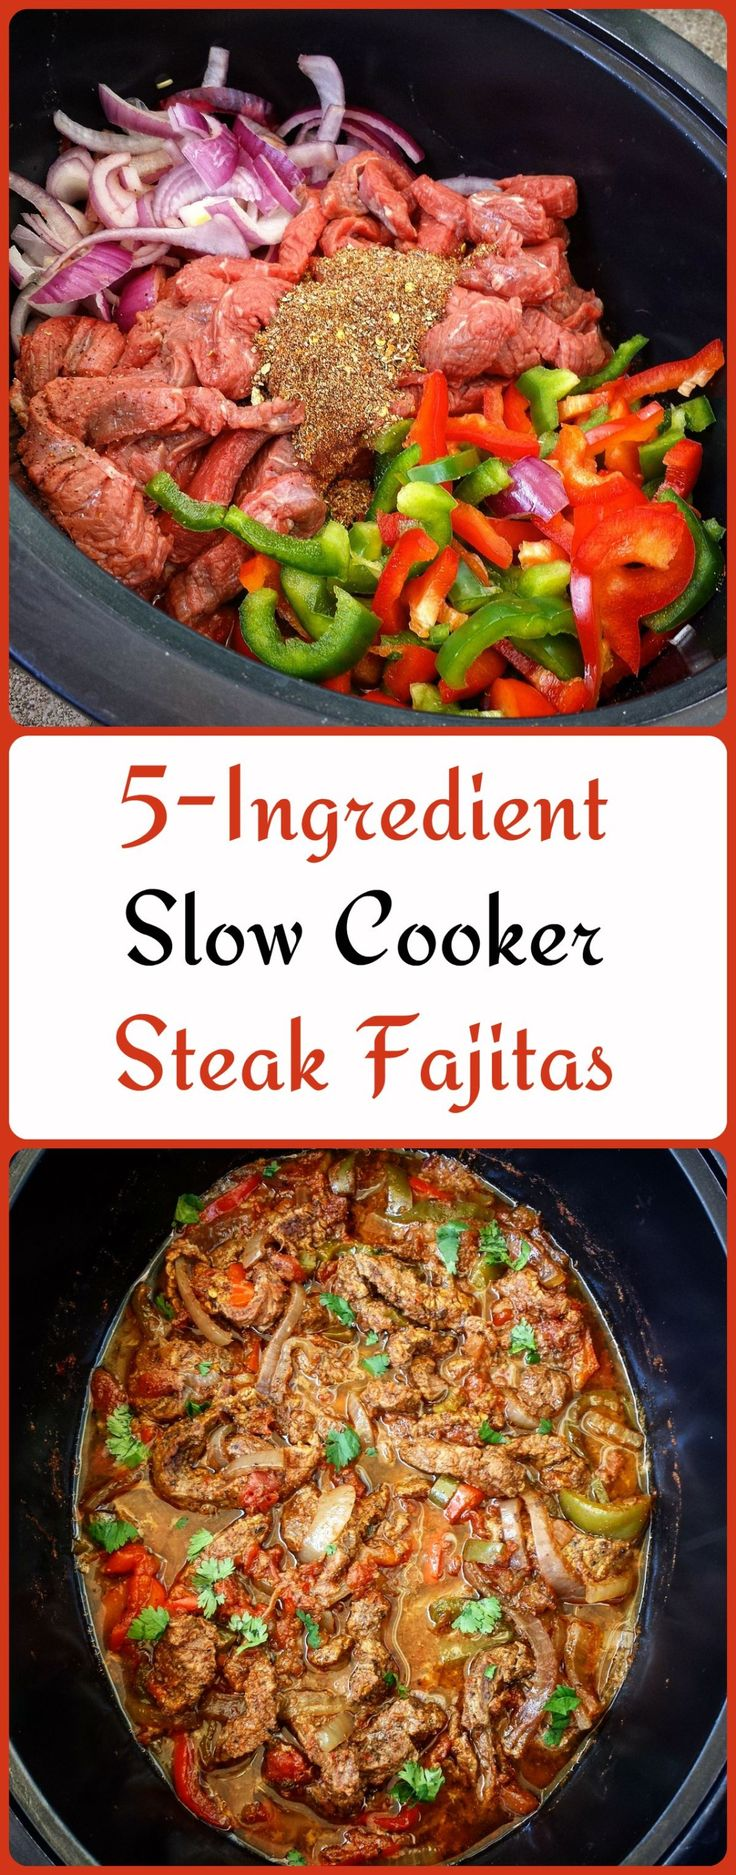 There are only 5-Ingredients in this slow cooker steak fajitas recipe. This easy yet delicious crock-pot dish is perfect any day of the week.